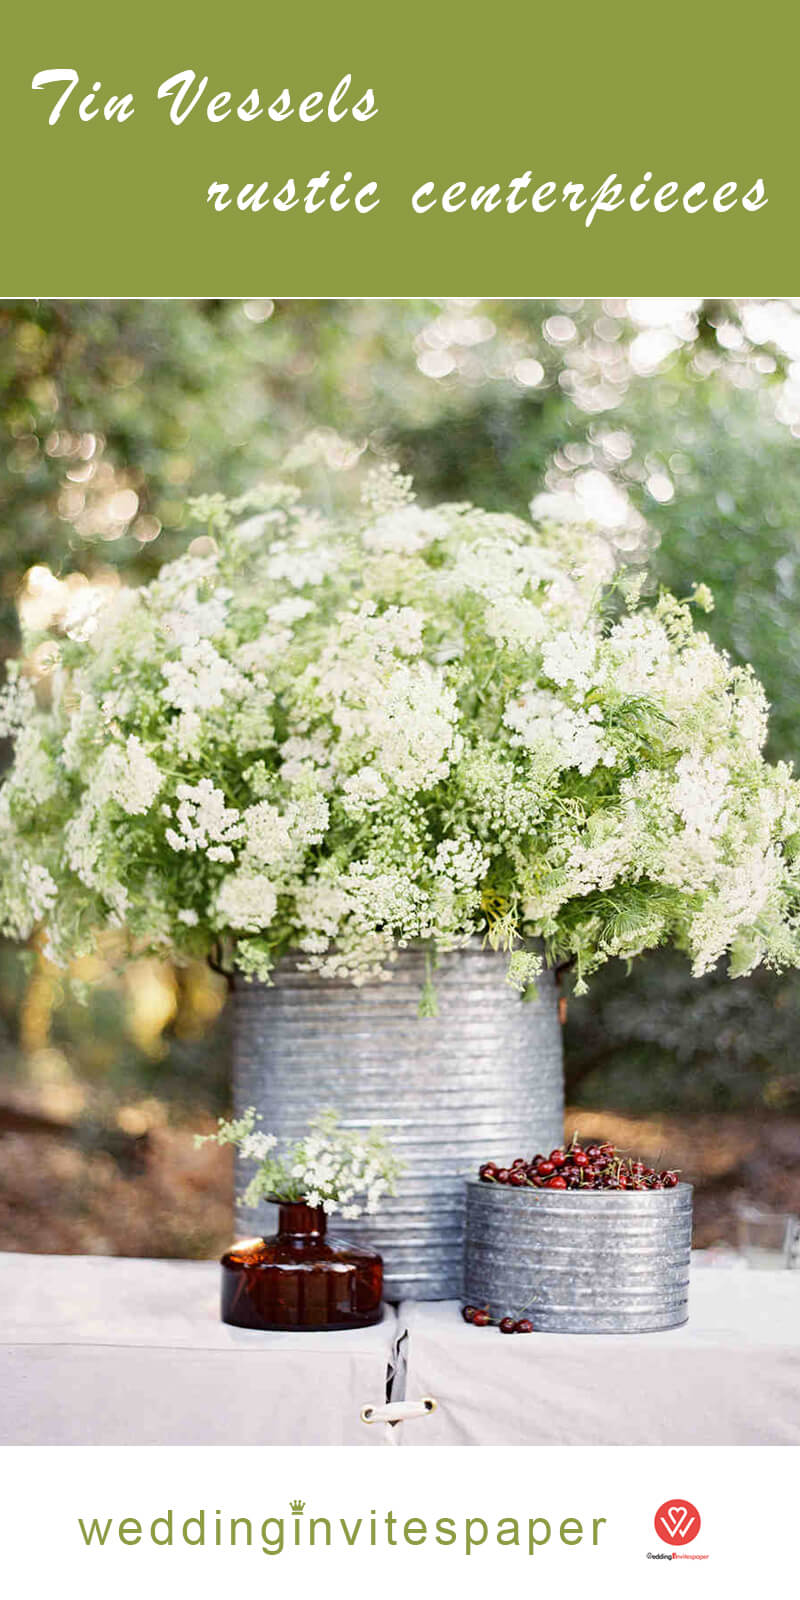 17 Tin Vessels rustic centerpieces.jpg